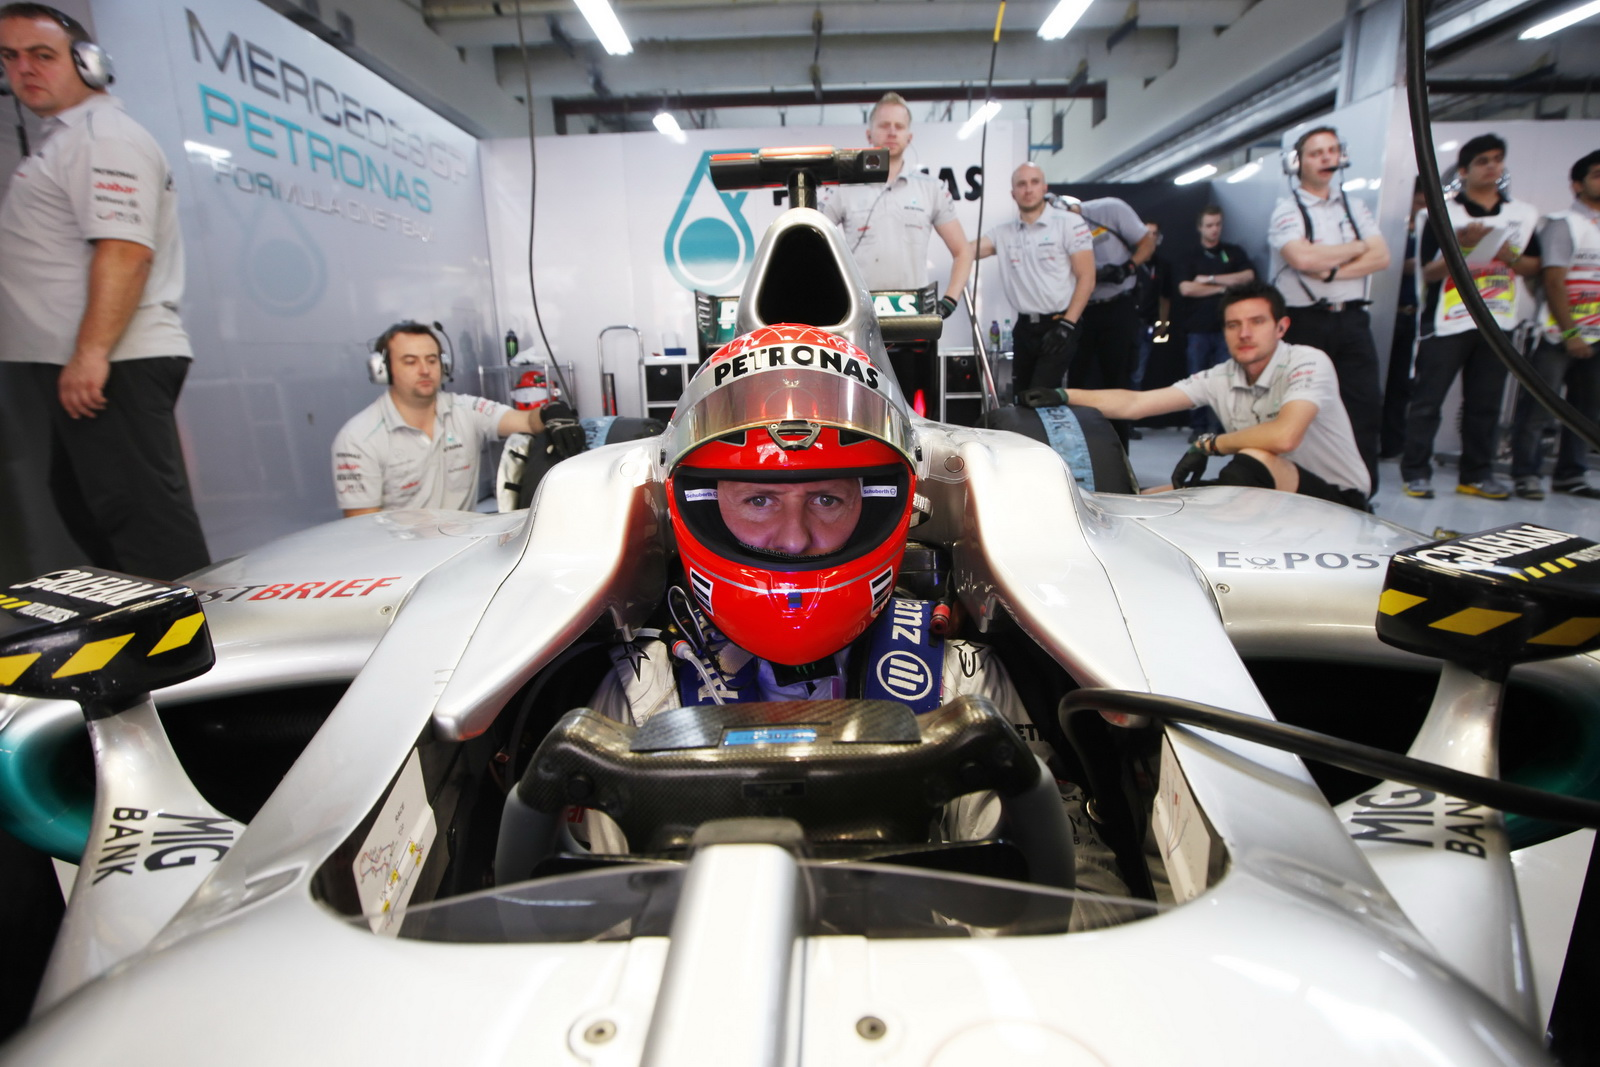 Motorsports: FIA Formula One World Championship 2011, Grand Prix of India